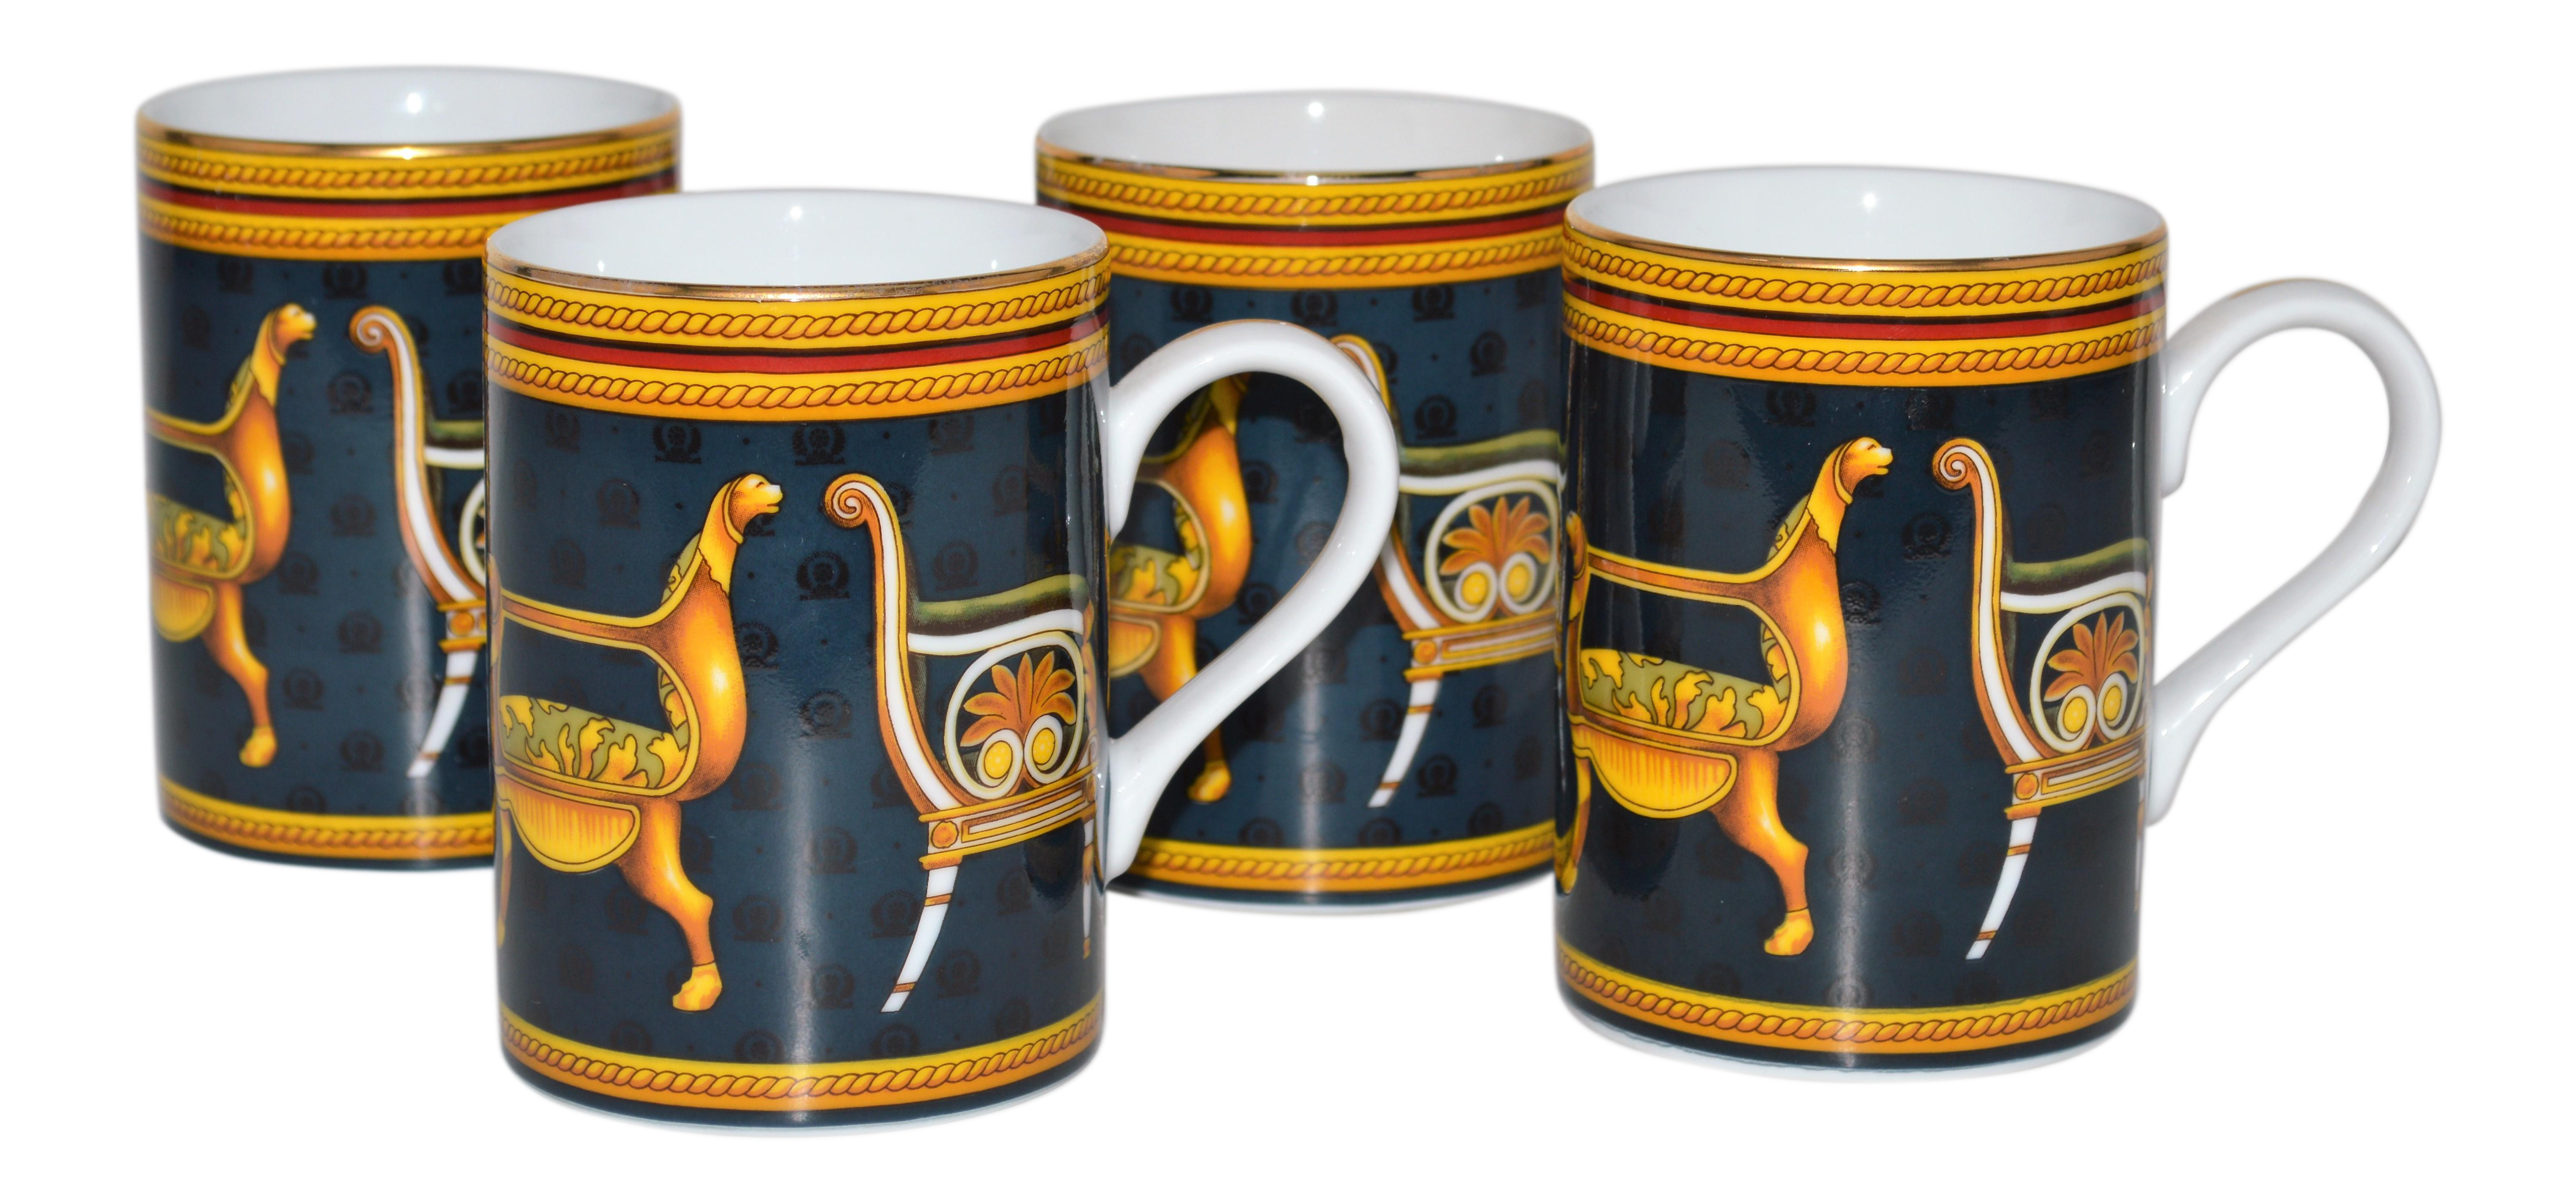 Gucci Historical Chairs Porcelain Coffee Cups Set of 4